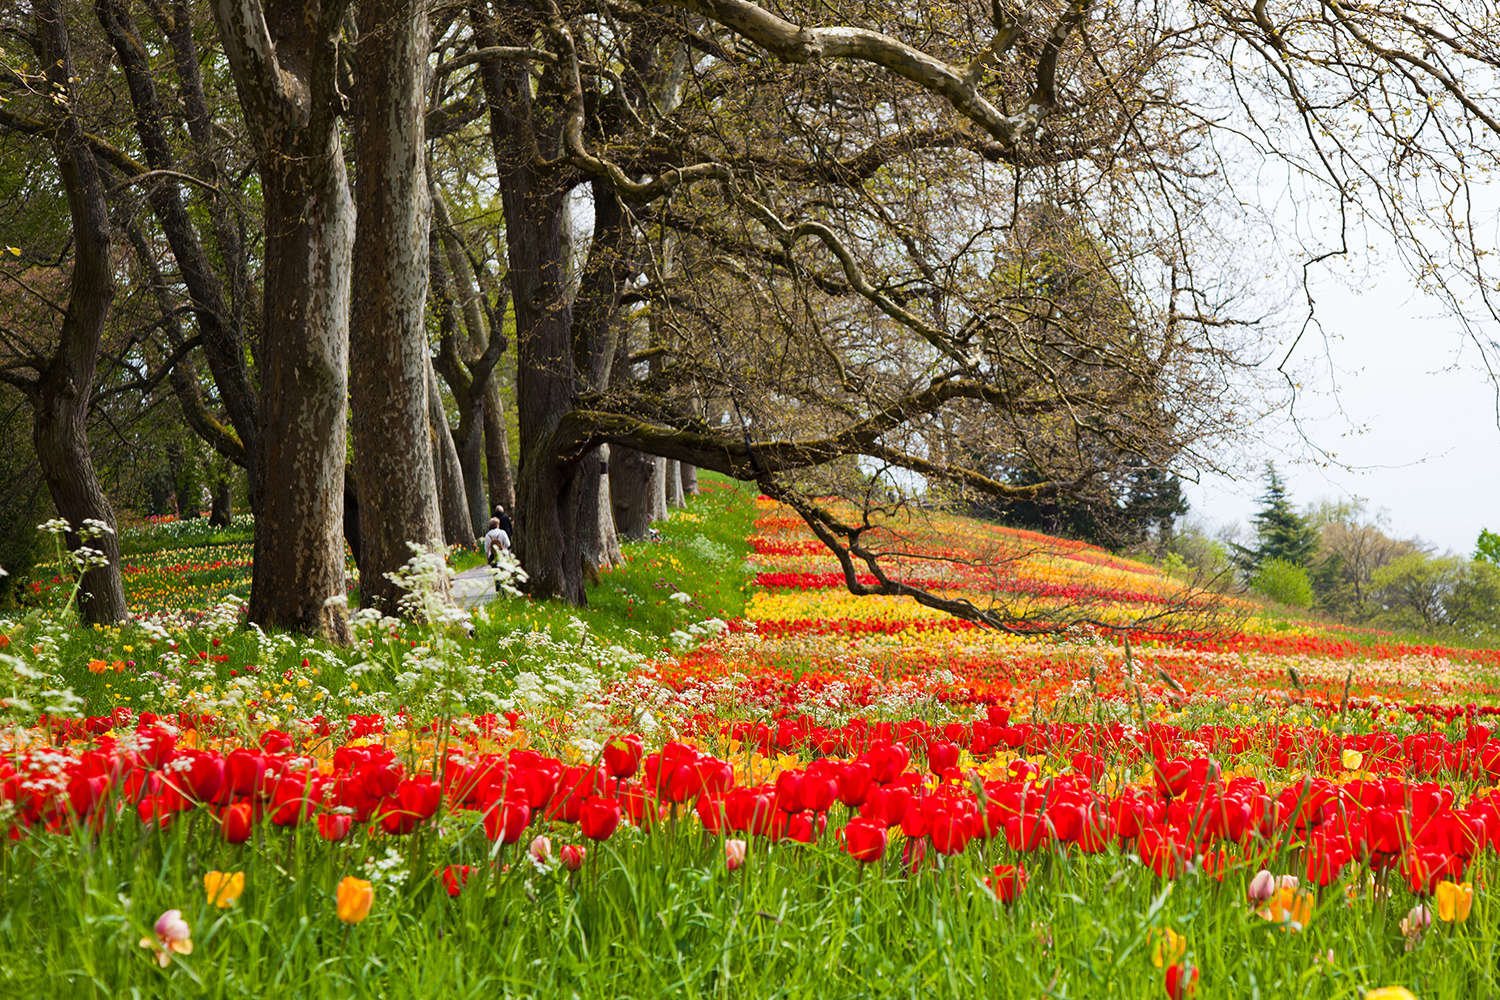 Landscaping idea. Growing tulips in a grassy meadow under trees. The bees and other insects in your garden will love it. The red and green looks great together.